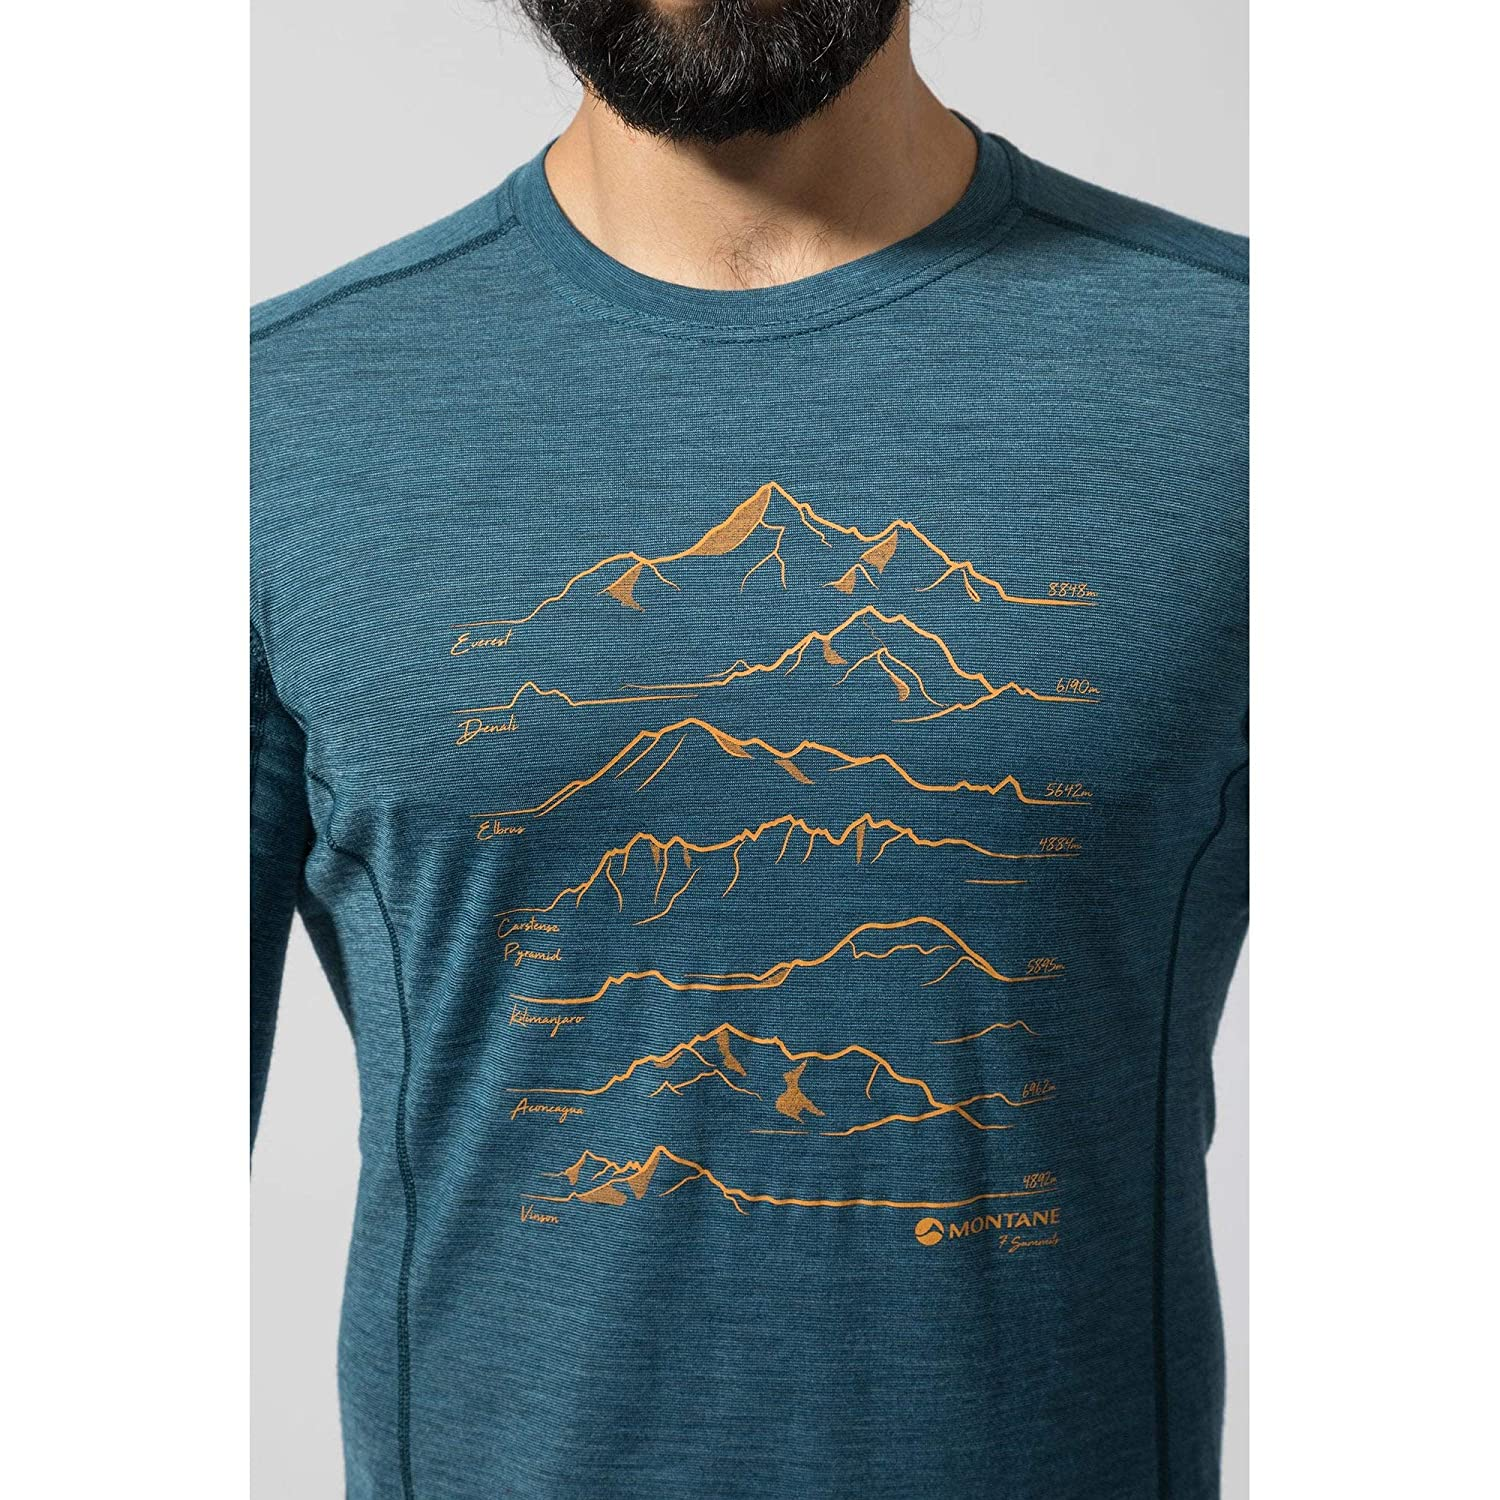 Montane Primino 140G 7 Summits Long Sleeve T-Shirt